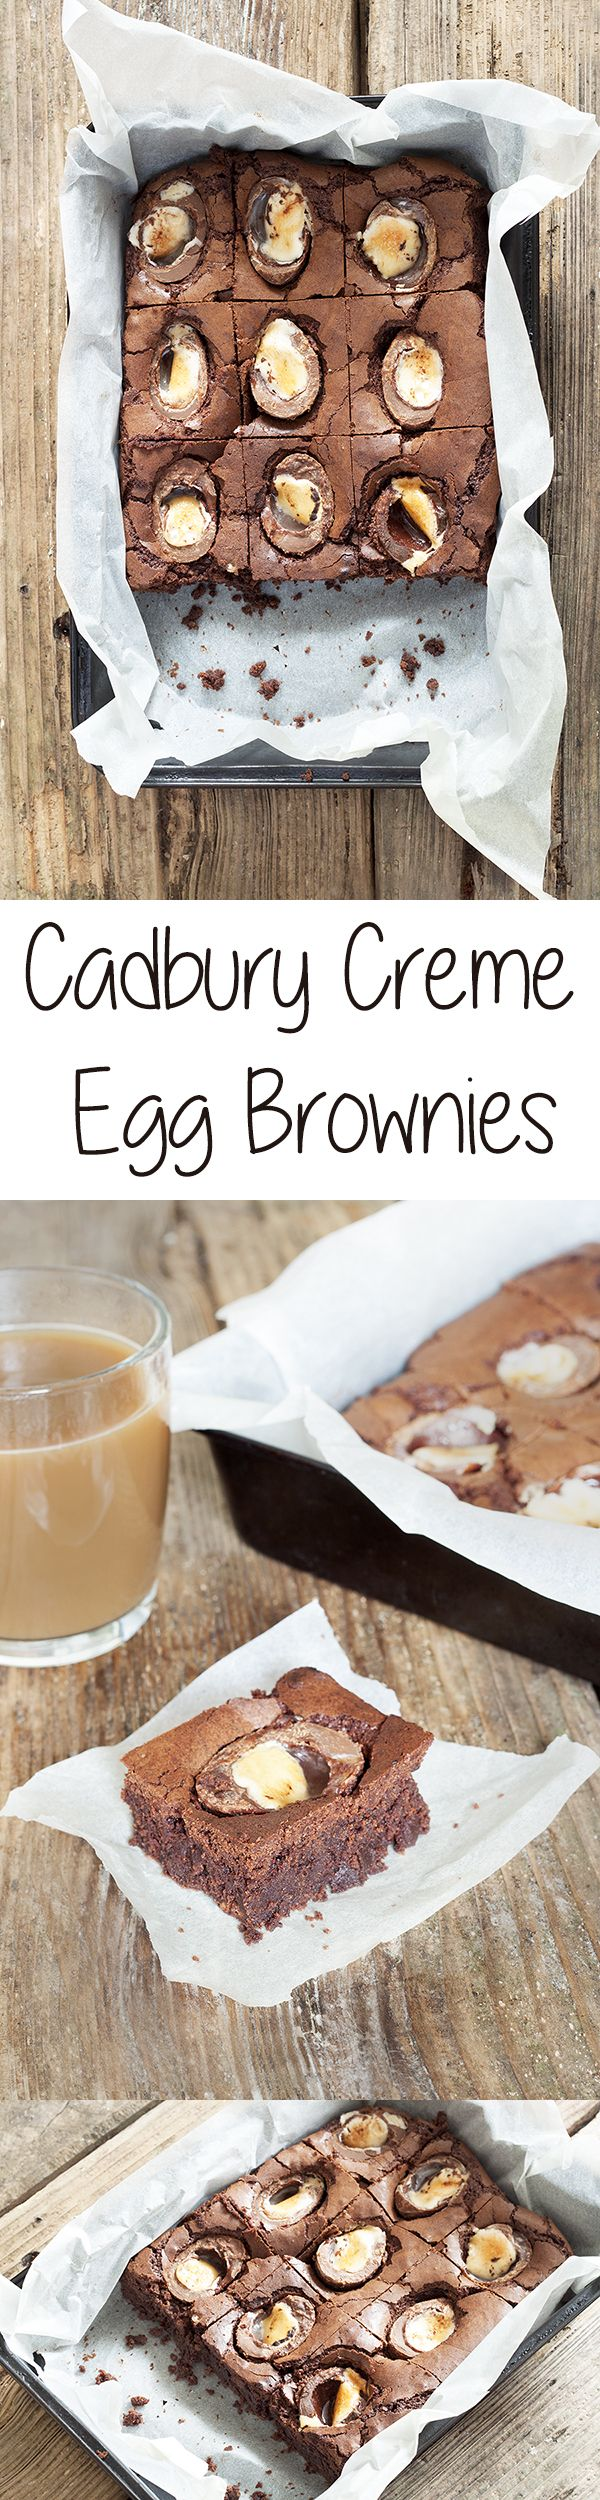 Yummy Cadbury Creme Egg Brownies